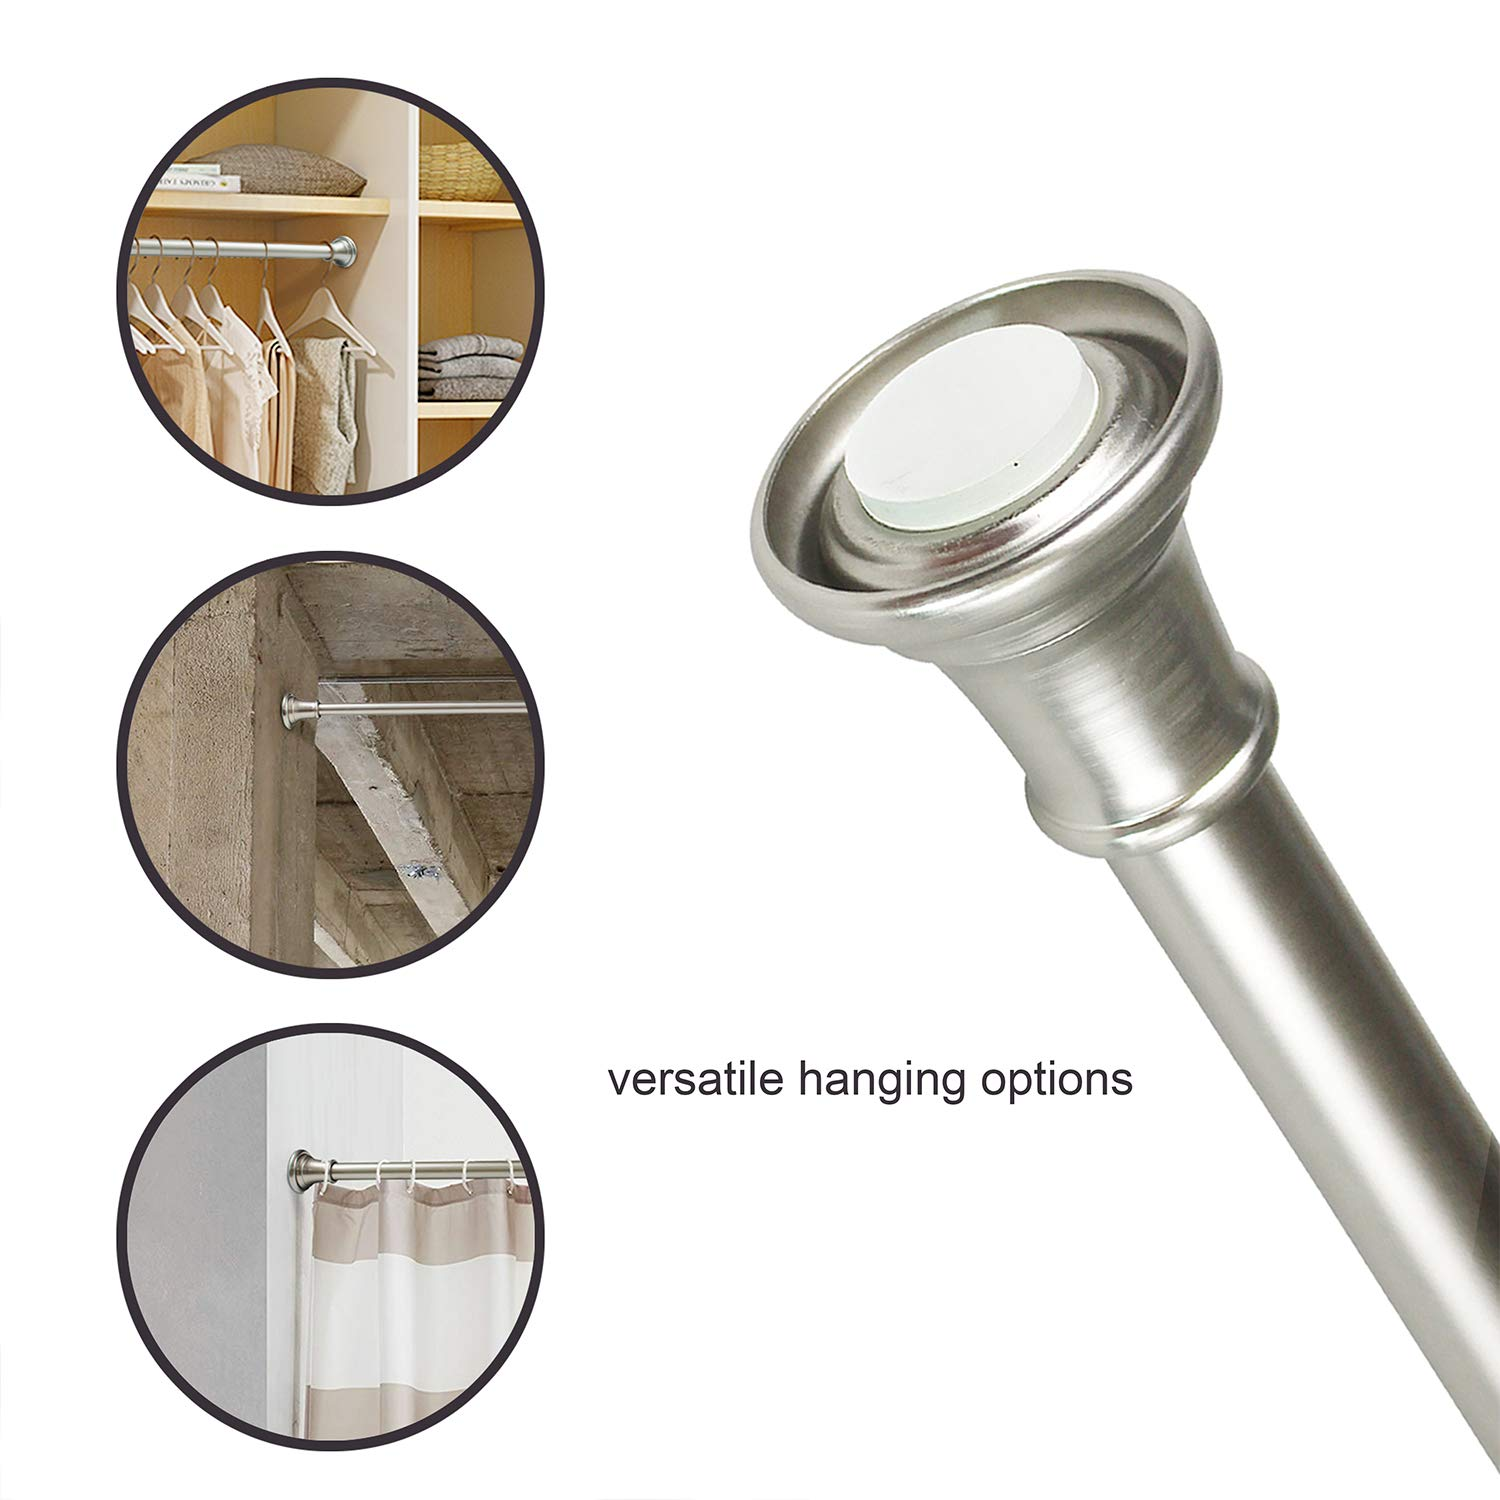 Screw In Shower Rod.Shower Rod Tension Shower Curatin Rod Adjustable Shower Curtain Pole In Screw Or No Need Tool Mounted Nickle Nickel 26 42